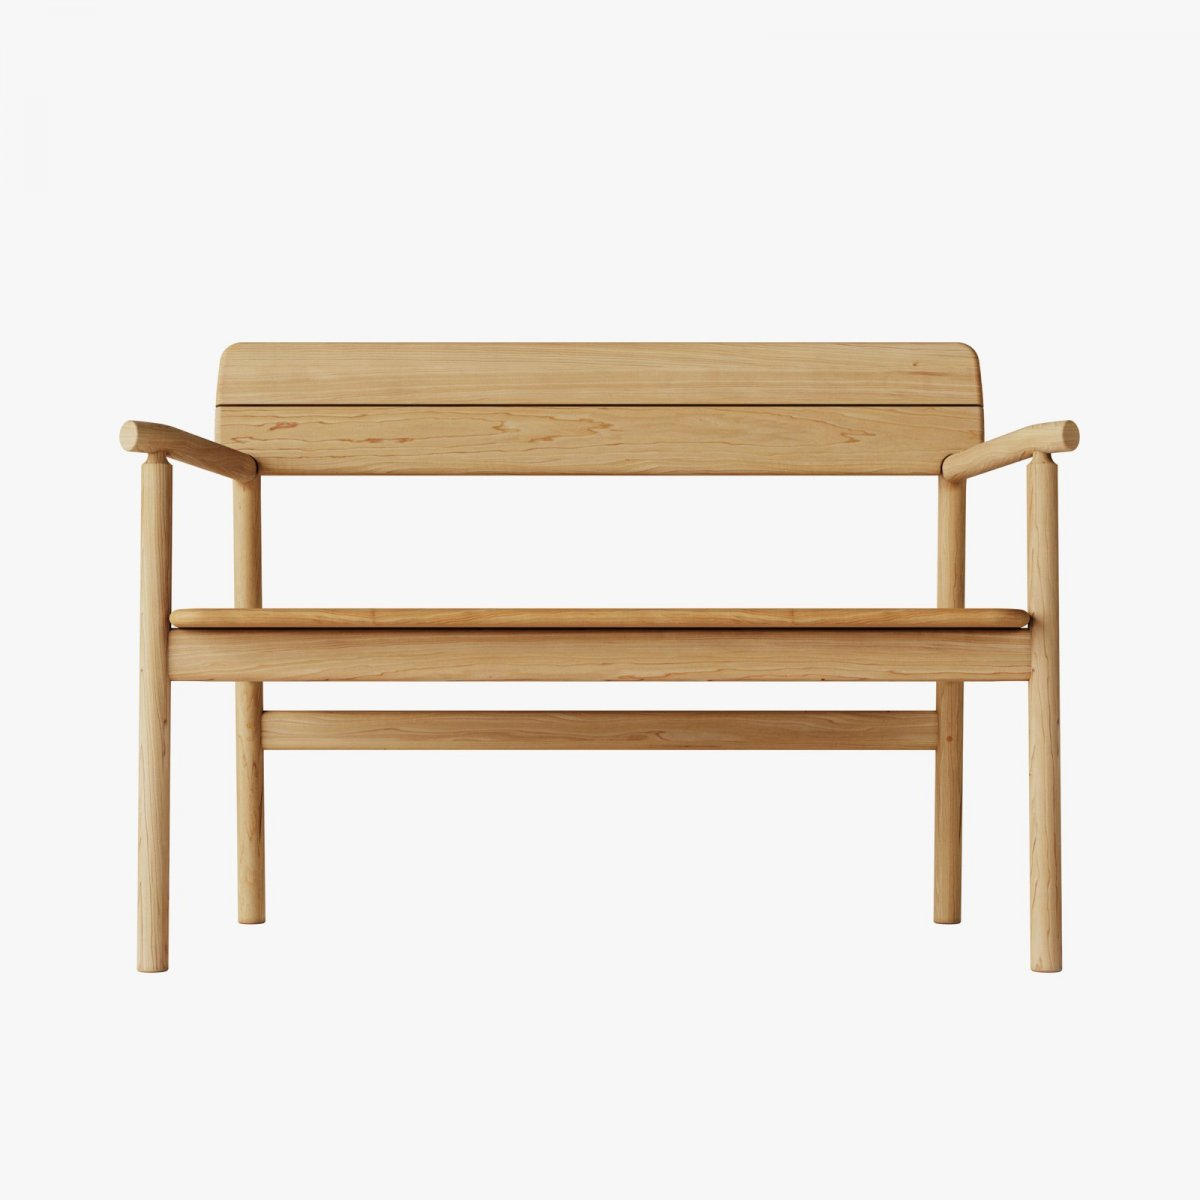 Tanso Bench, front view.